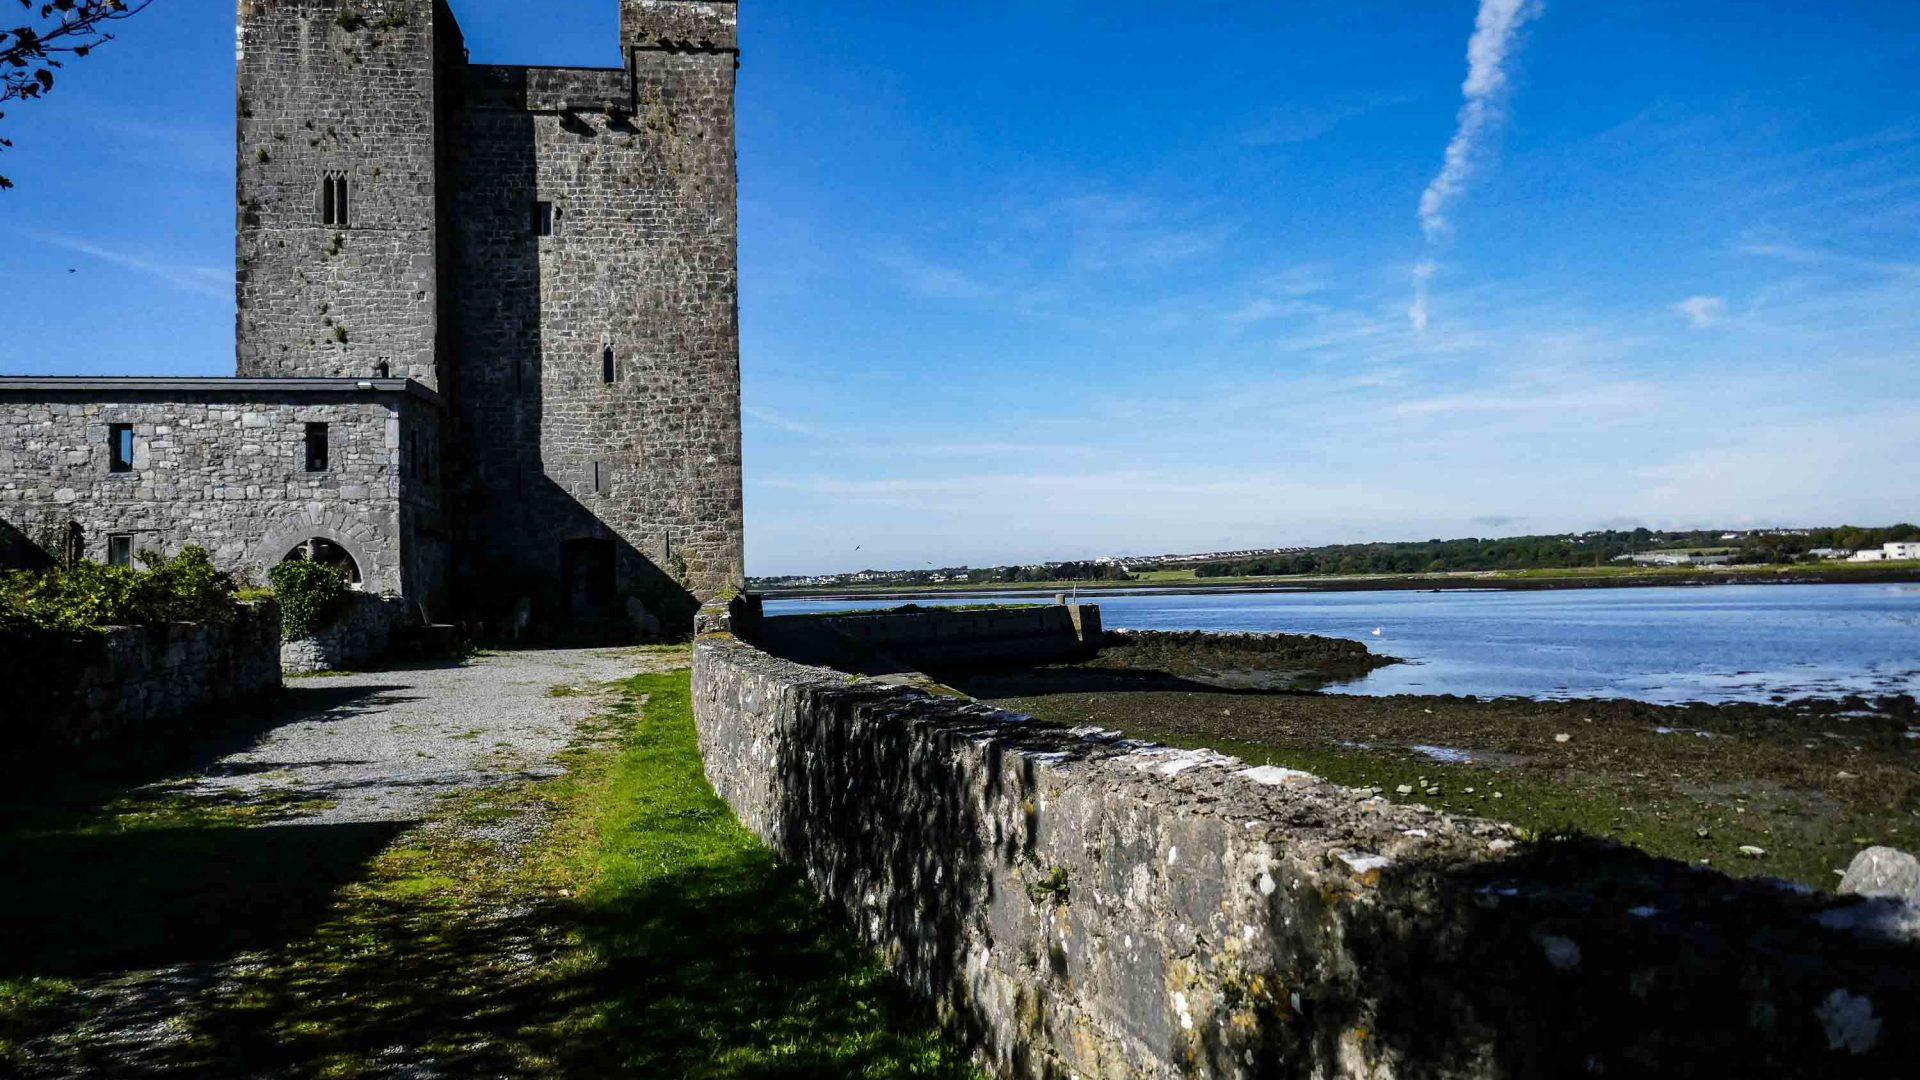 The medieval Oranmore Castle in County Galway, Ireland.